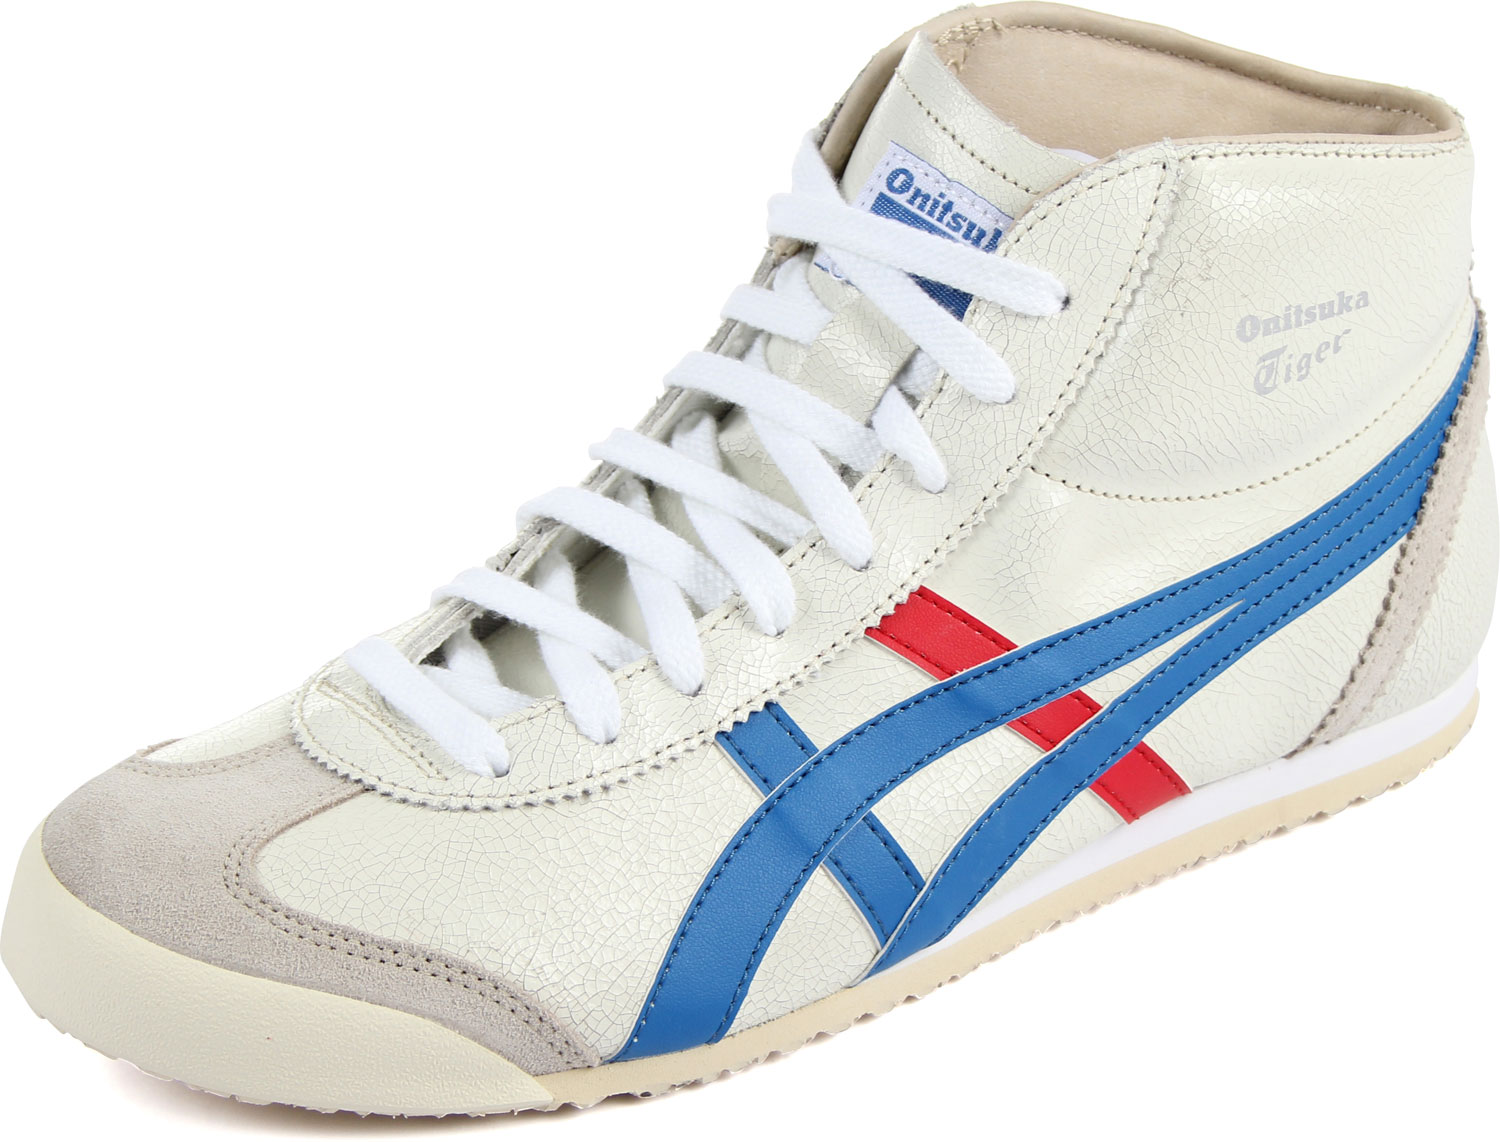 onitsuka tiger mexico mid runner dl409 review